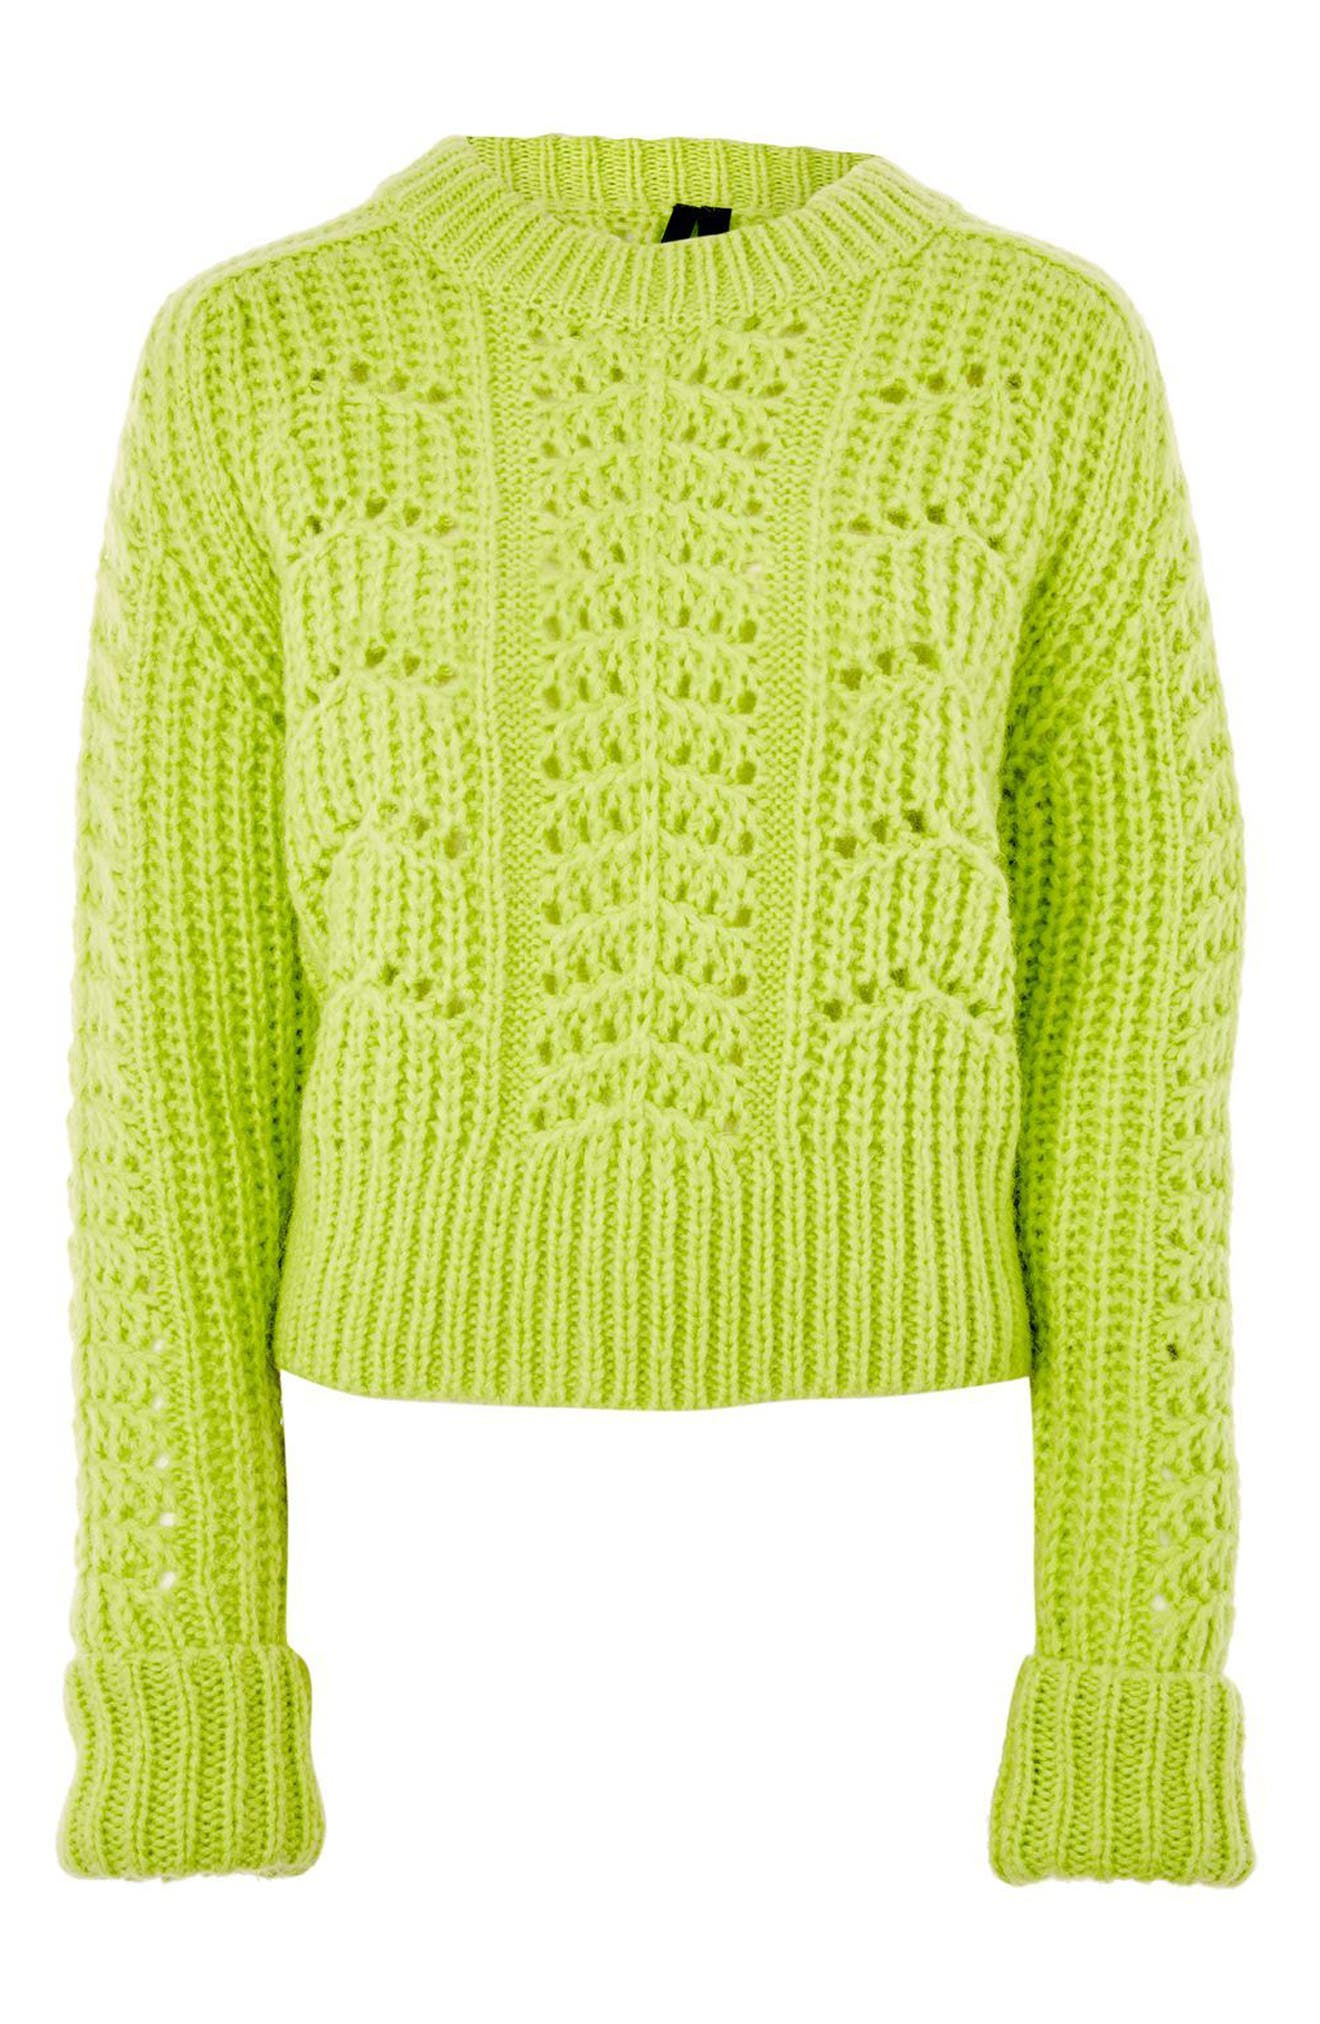 Main Image - Topshop Boutique Cable Knit Sweater